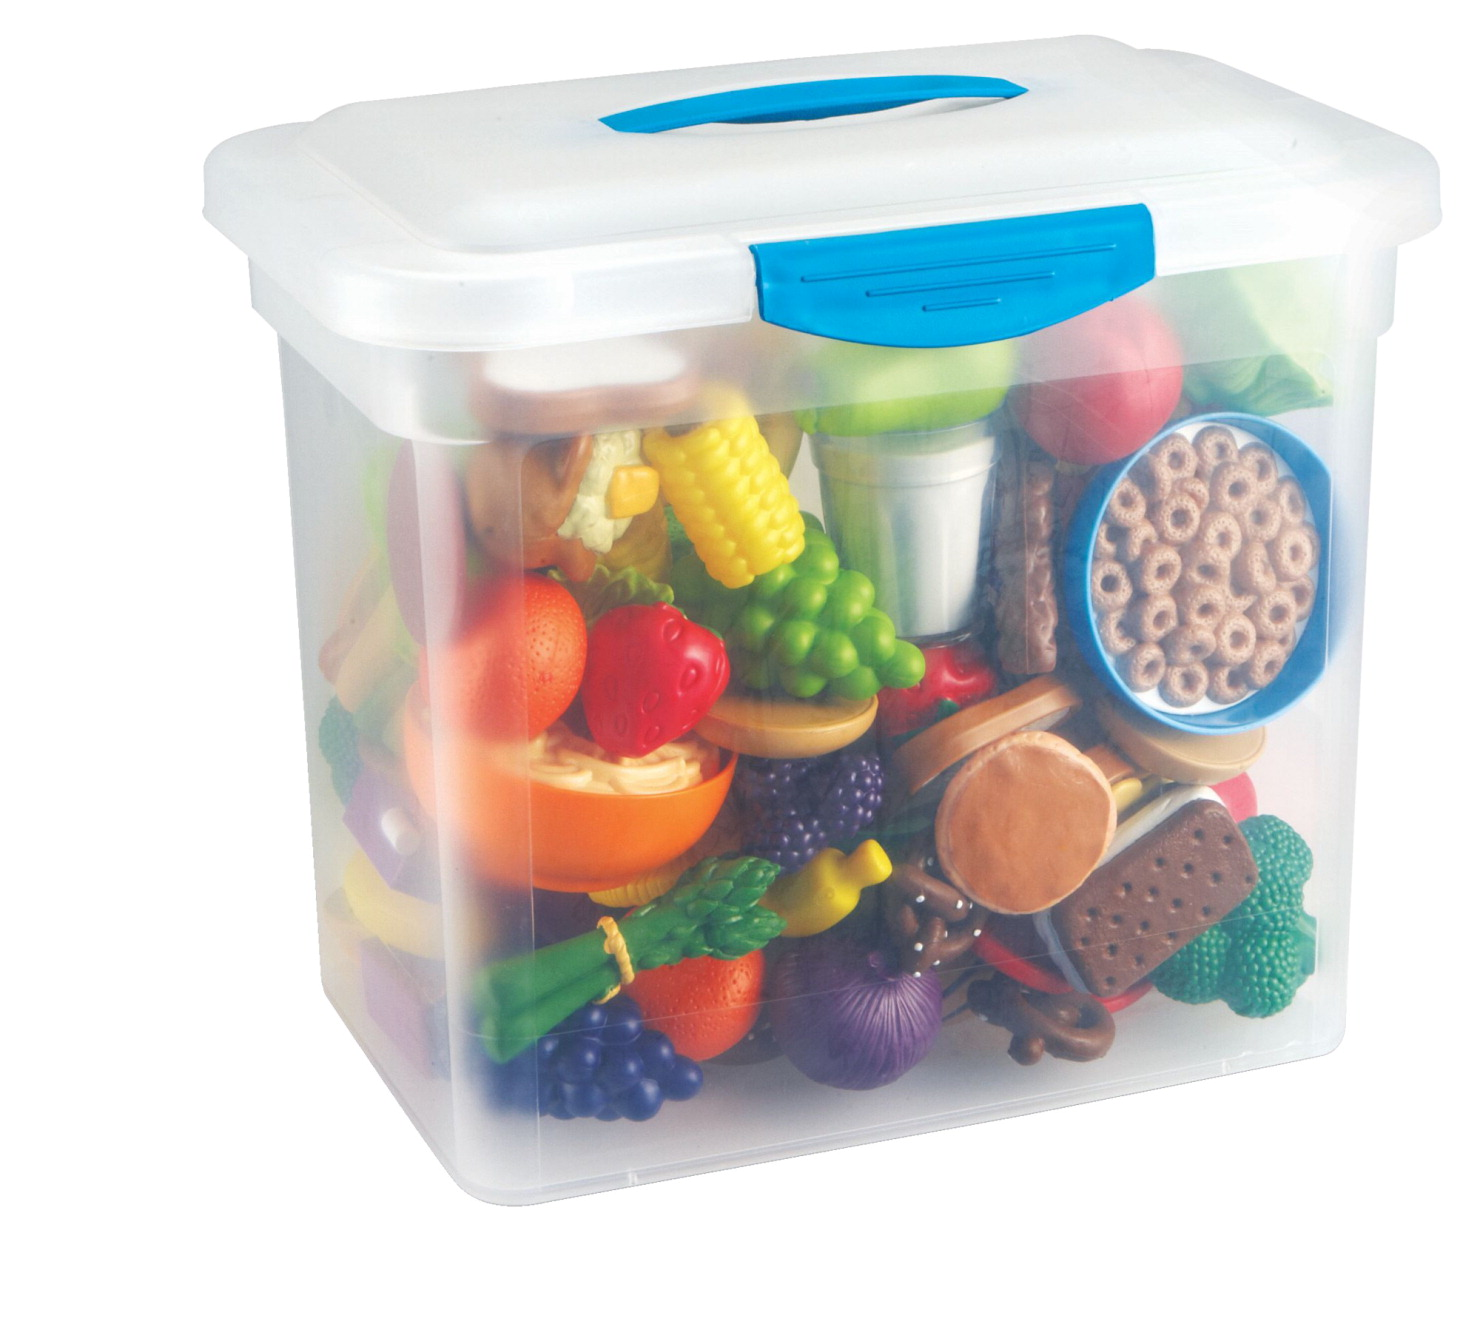 Toy Food And Dishes : Learning resources new sprouts classroom play food set